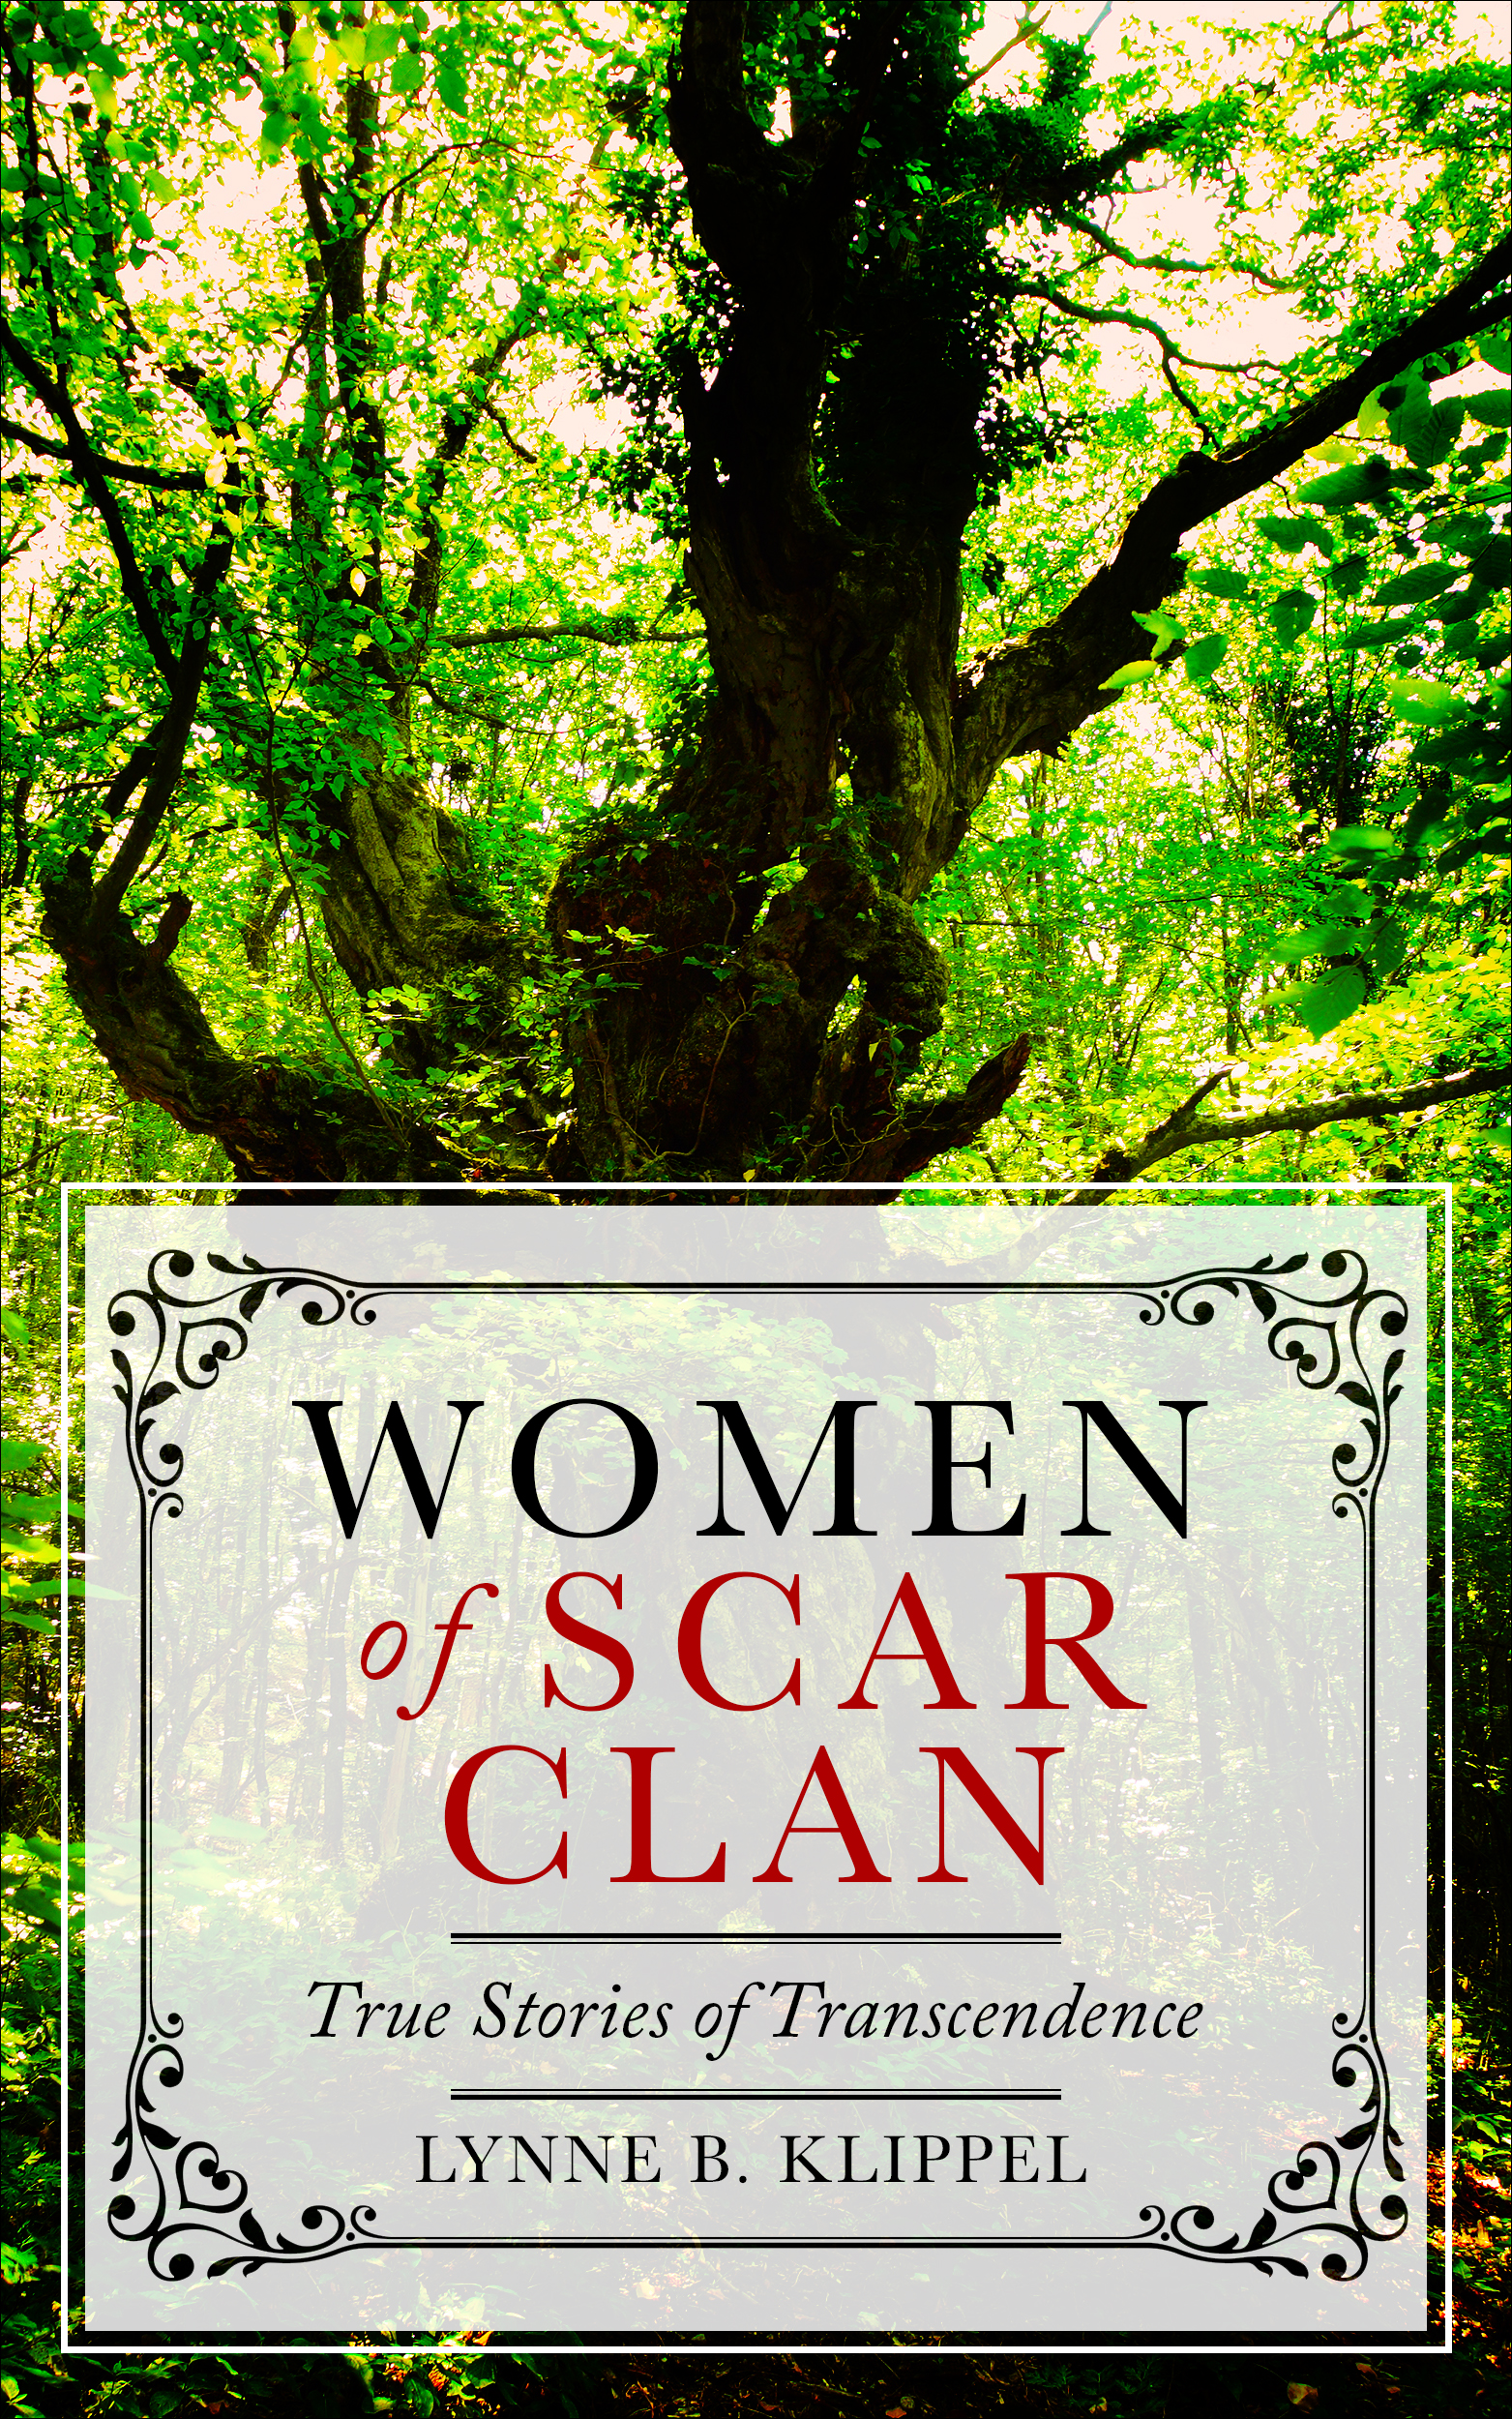 Women of Scar Clan: True Stories of Transcendence